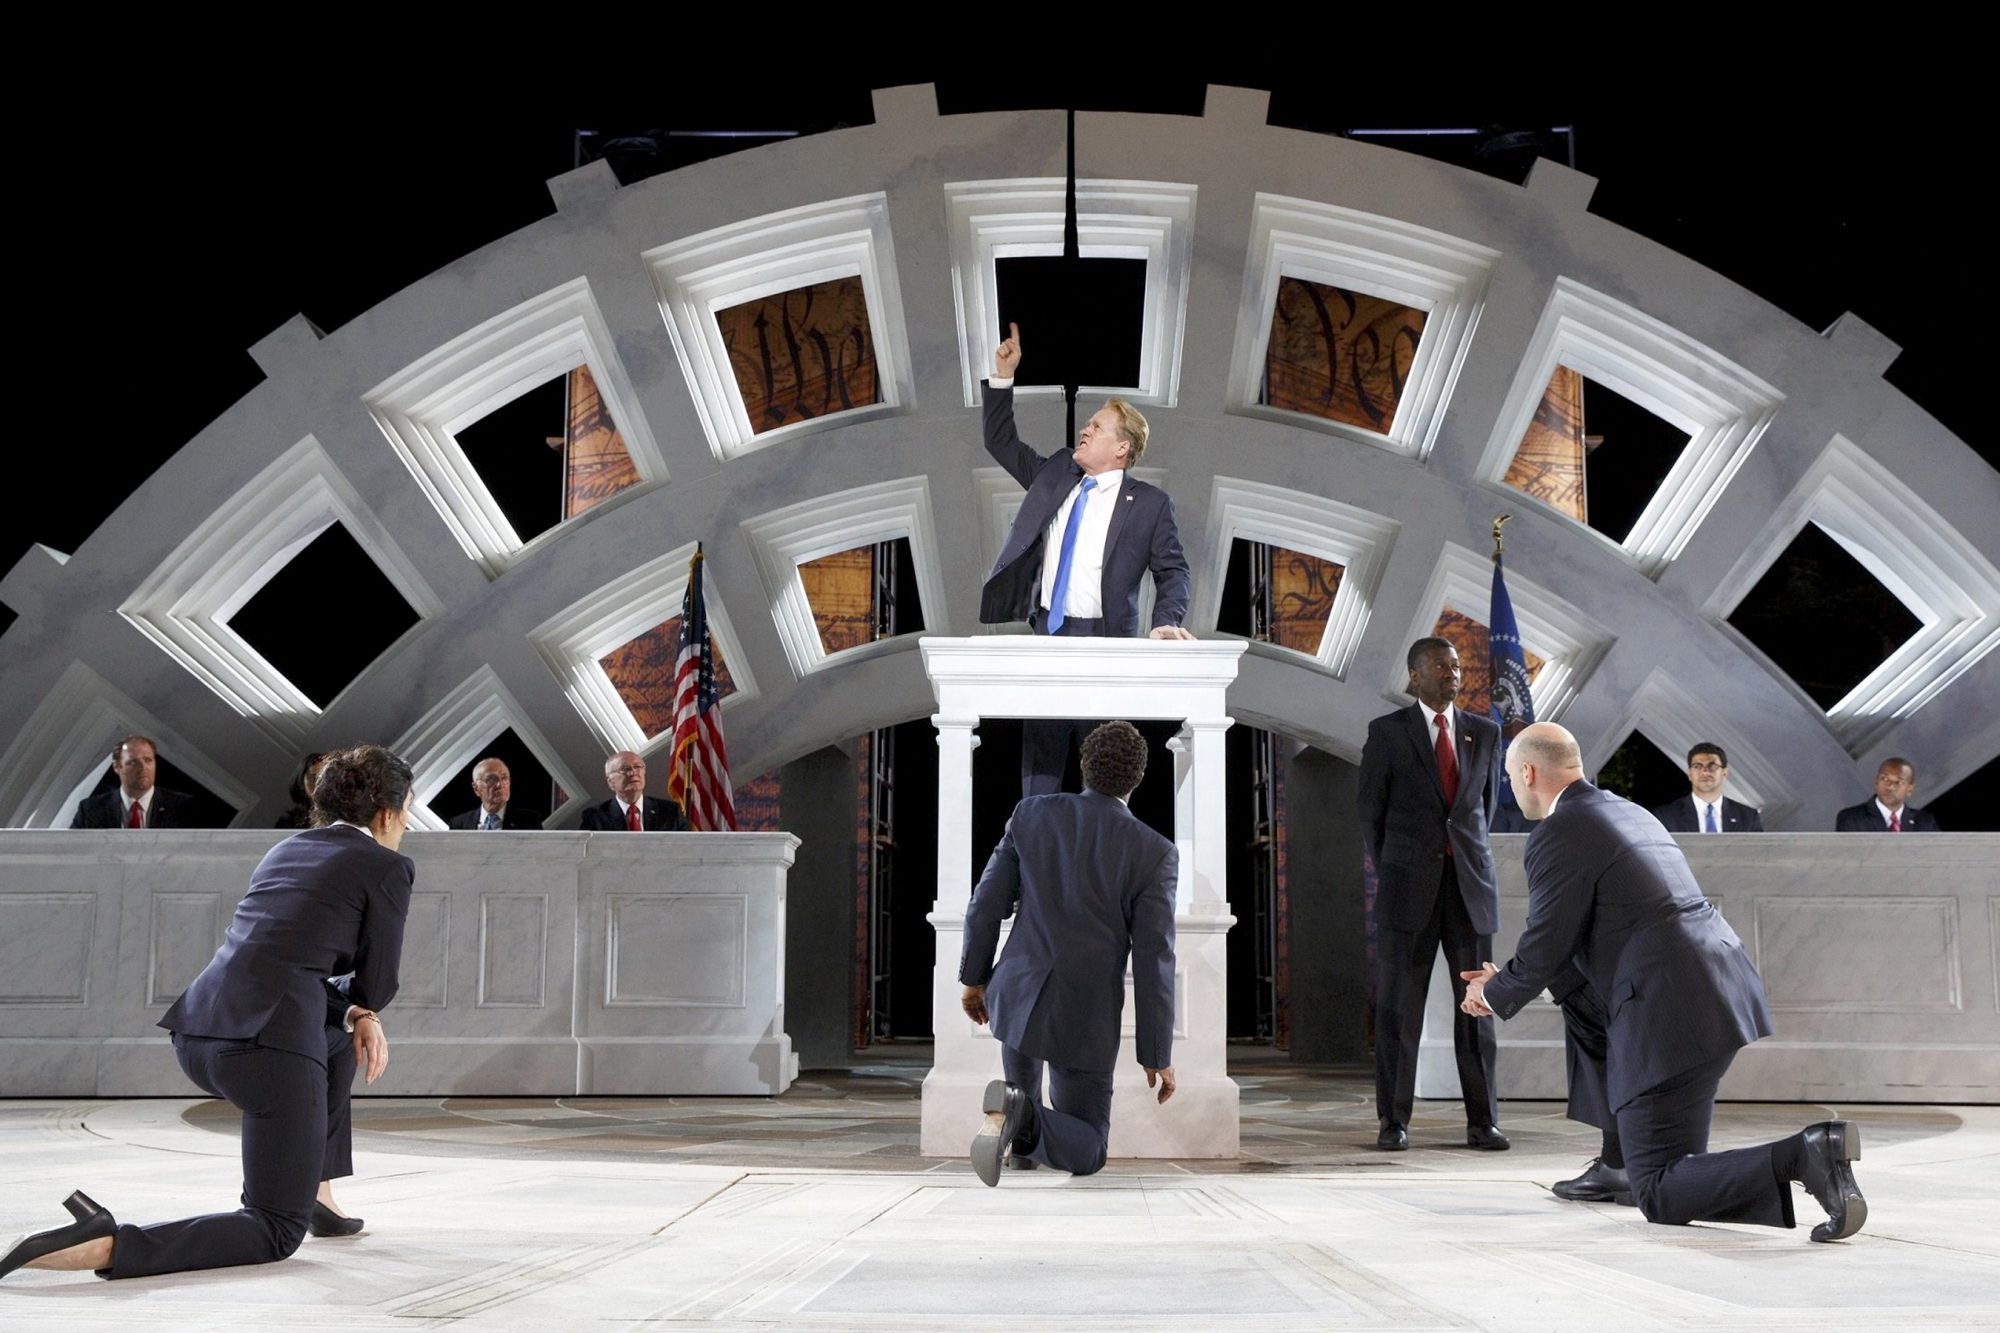 Delta and Bank of America abandon Trump-like 'Julius Caesar'